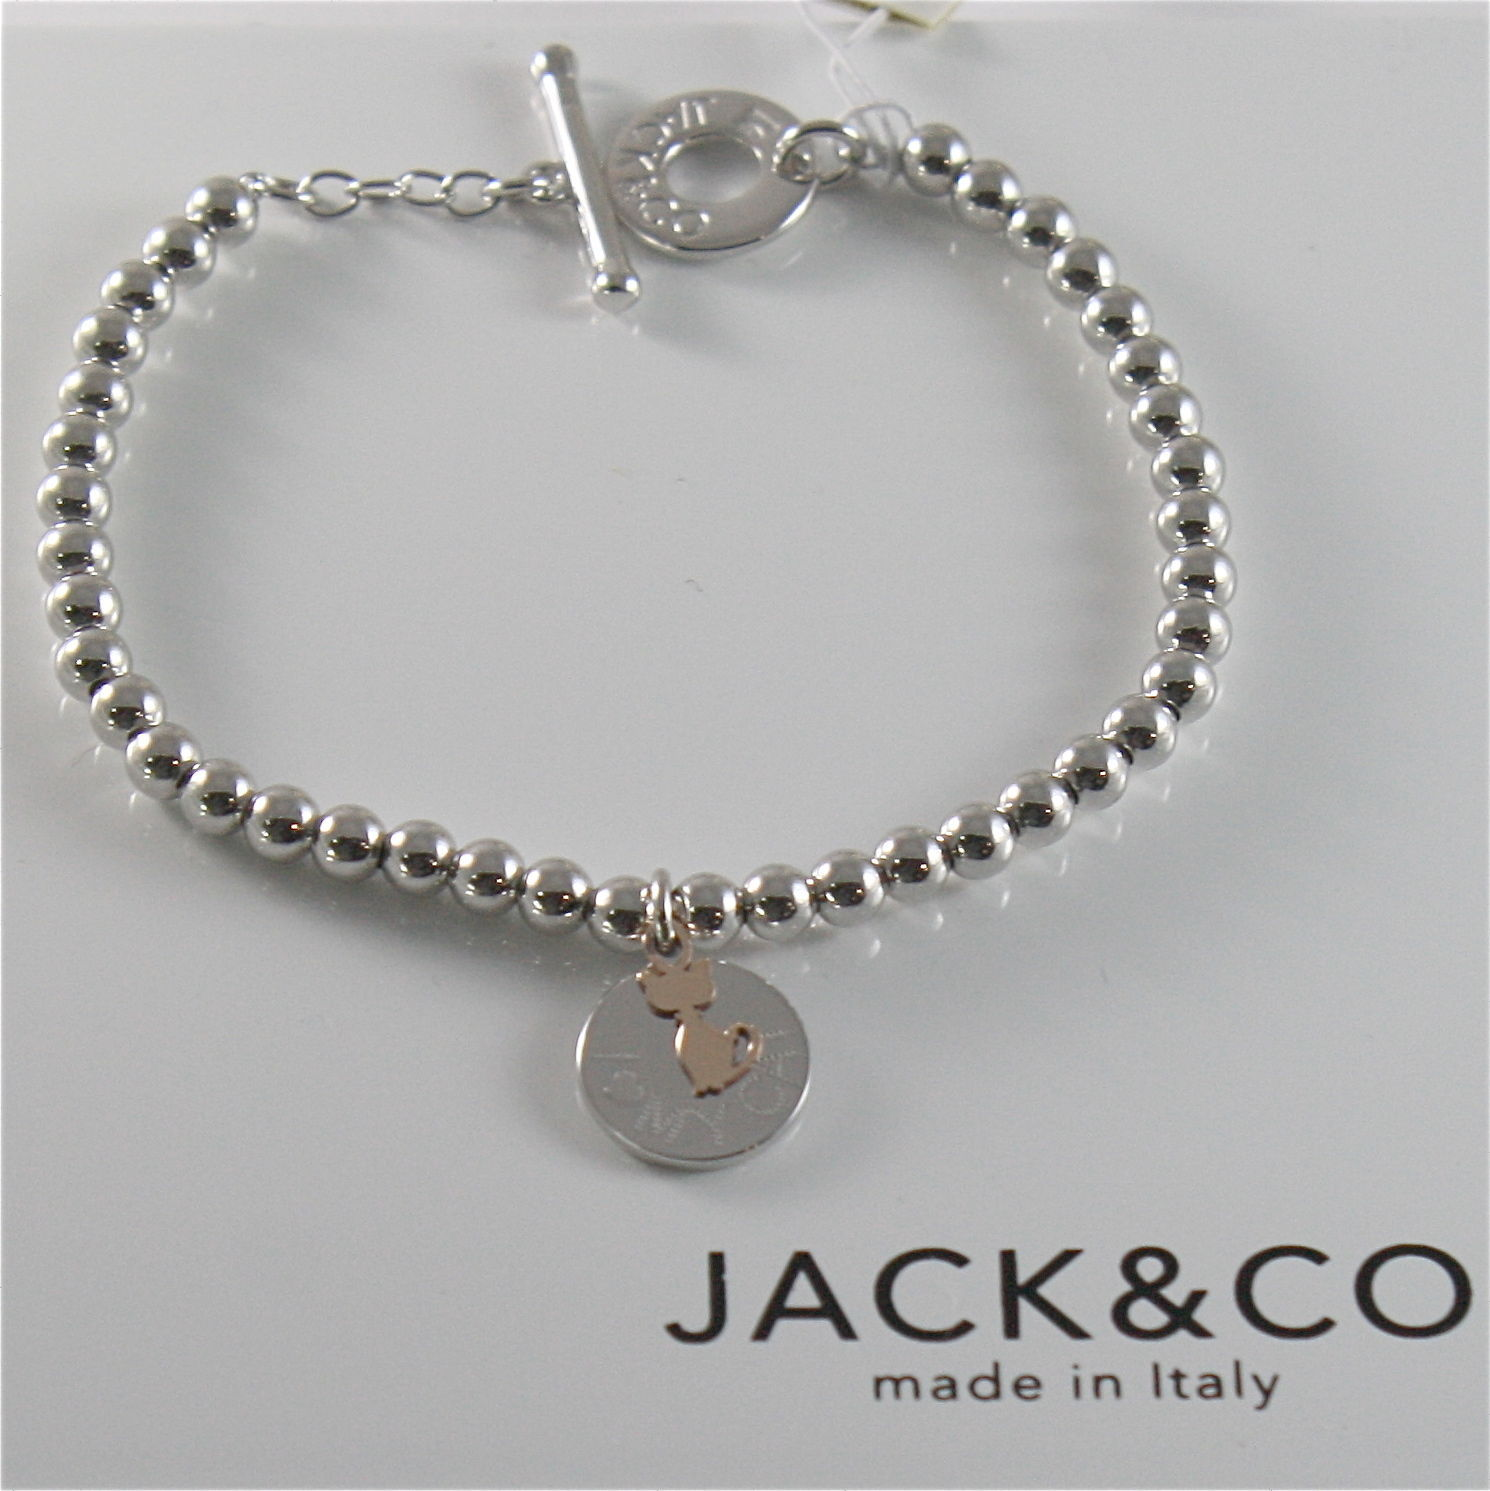 925 RHODIUM SILVER JACK&CO BRACELET WITH 9KT ROSE GOLD CAT KITTEN  MADE IN ITALY